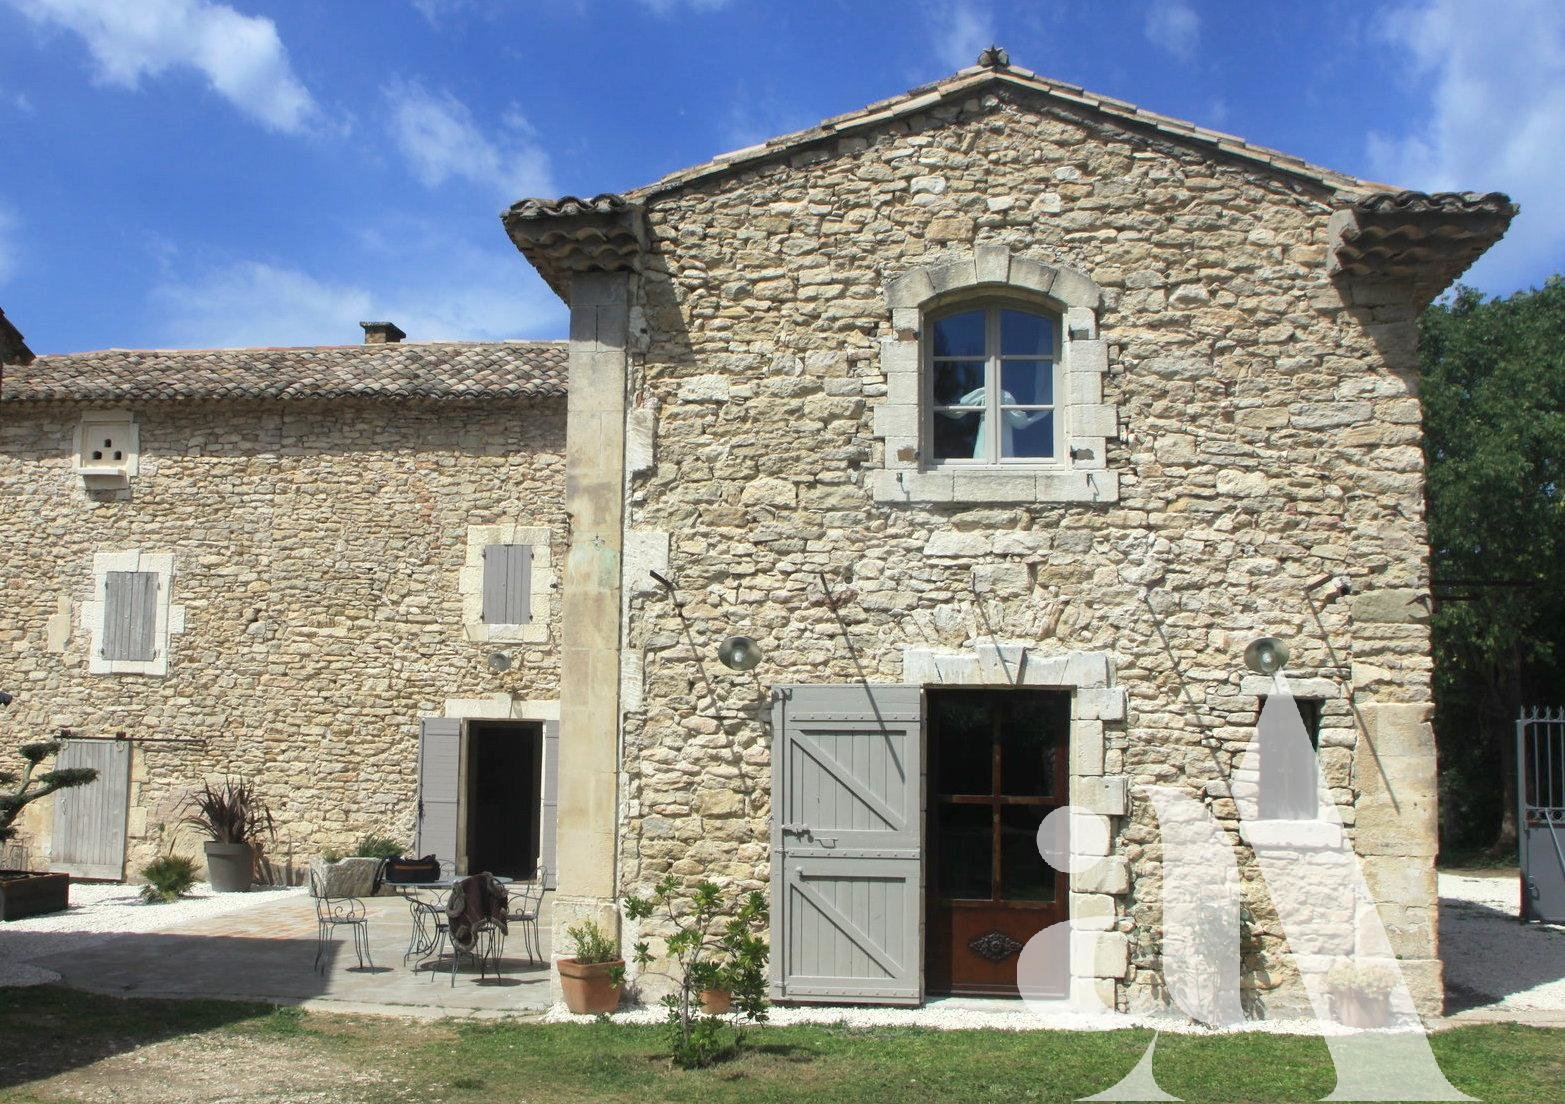 LA MAS DE LA BECASSE - Ménerbes - Luberon - 4 bedrooms - 8 people